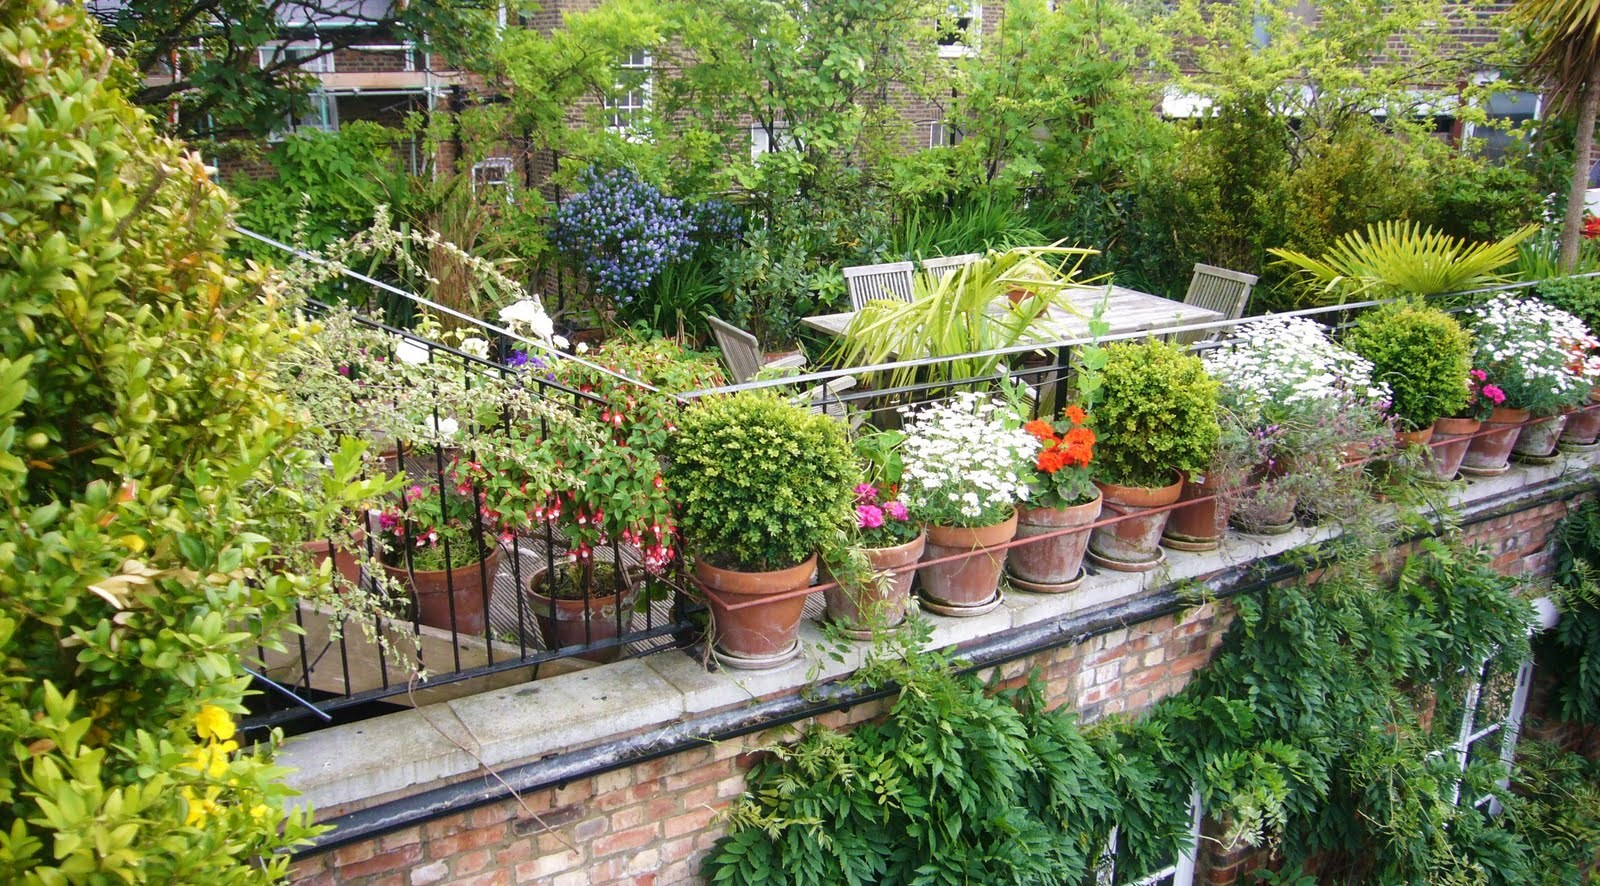 Fabulous space saving designs for the rooftop garden for Garden design ideas